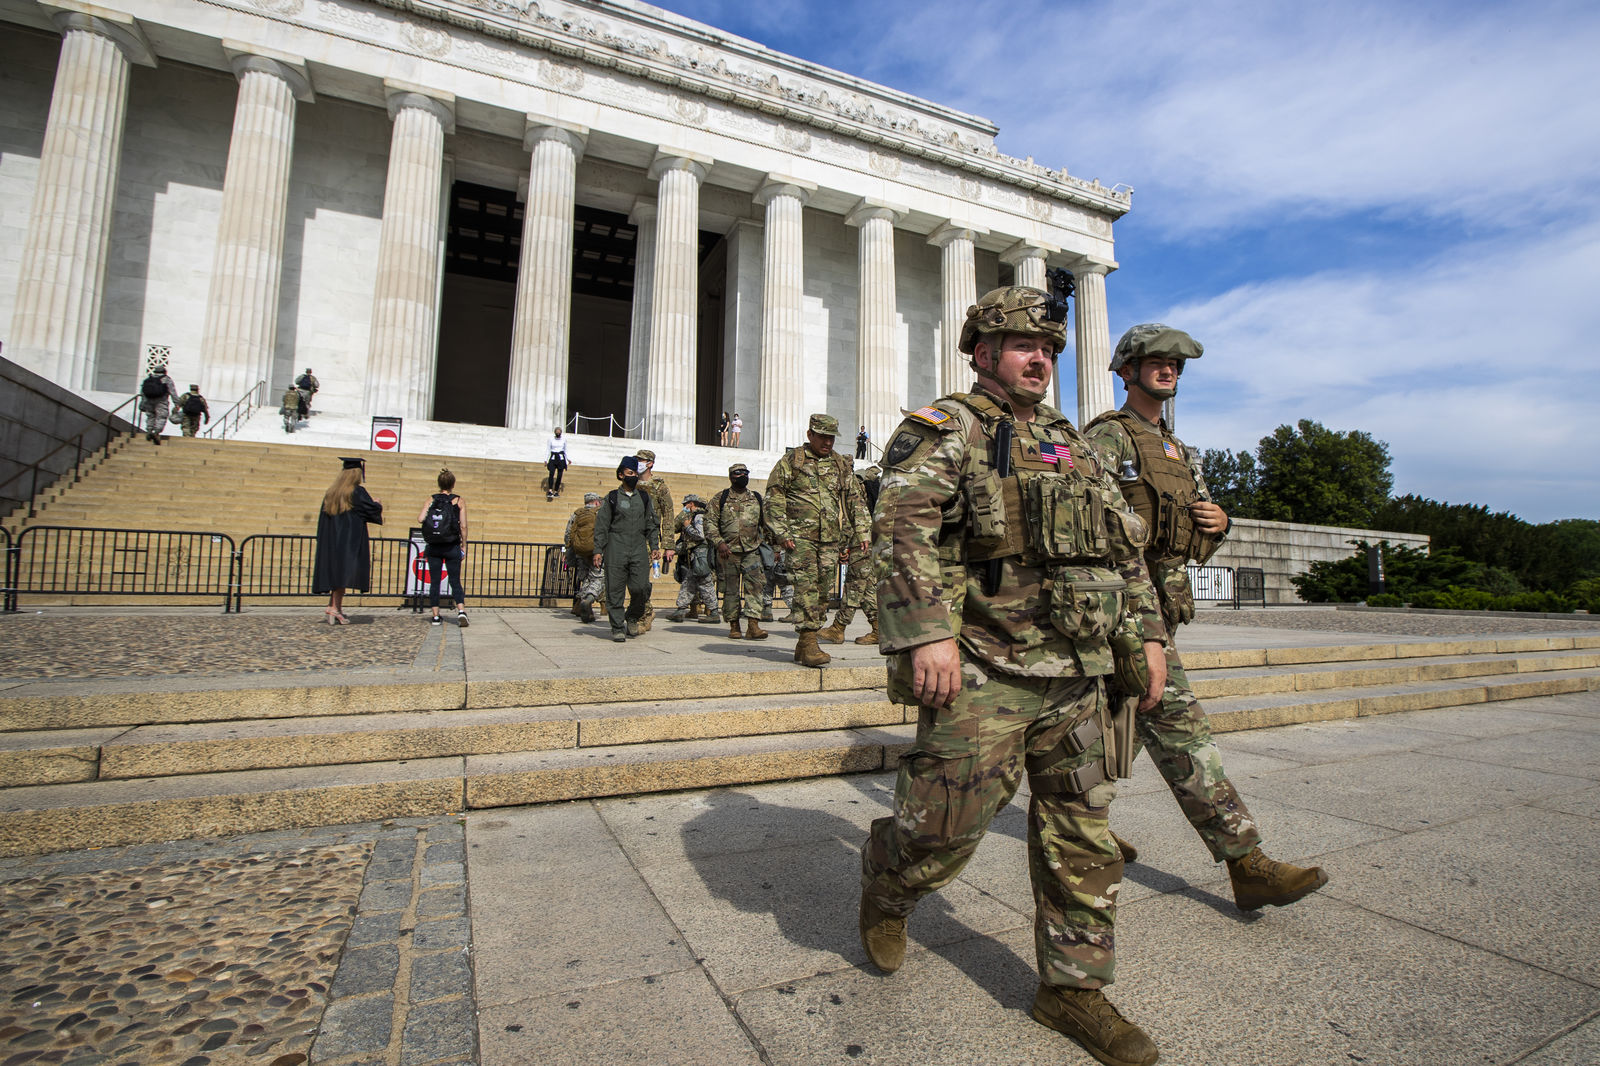 Members of the District of Columbia Army National Guard walk to their designated positions at the National Mall near the Lincoln Memorial in Washington, Wednesday, June 3, 2020, securing the area as protests continue following the death of George Floyd, a who died after being restrained by Minneapolis police officers. (AP Photo/Manuel Balce Ceneta)